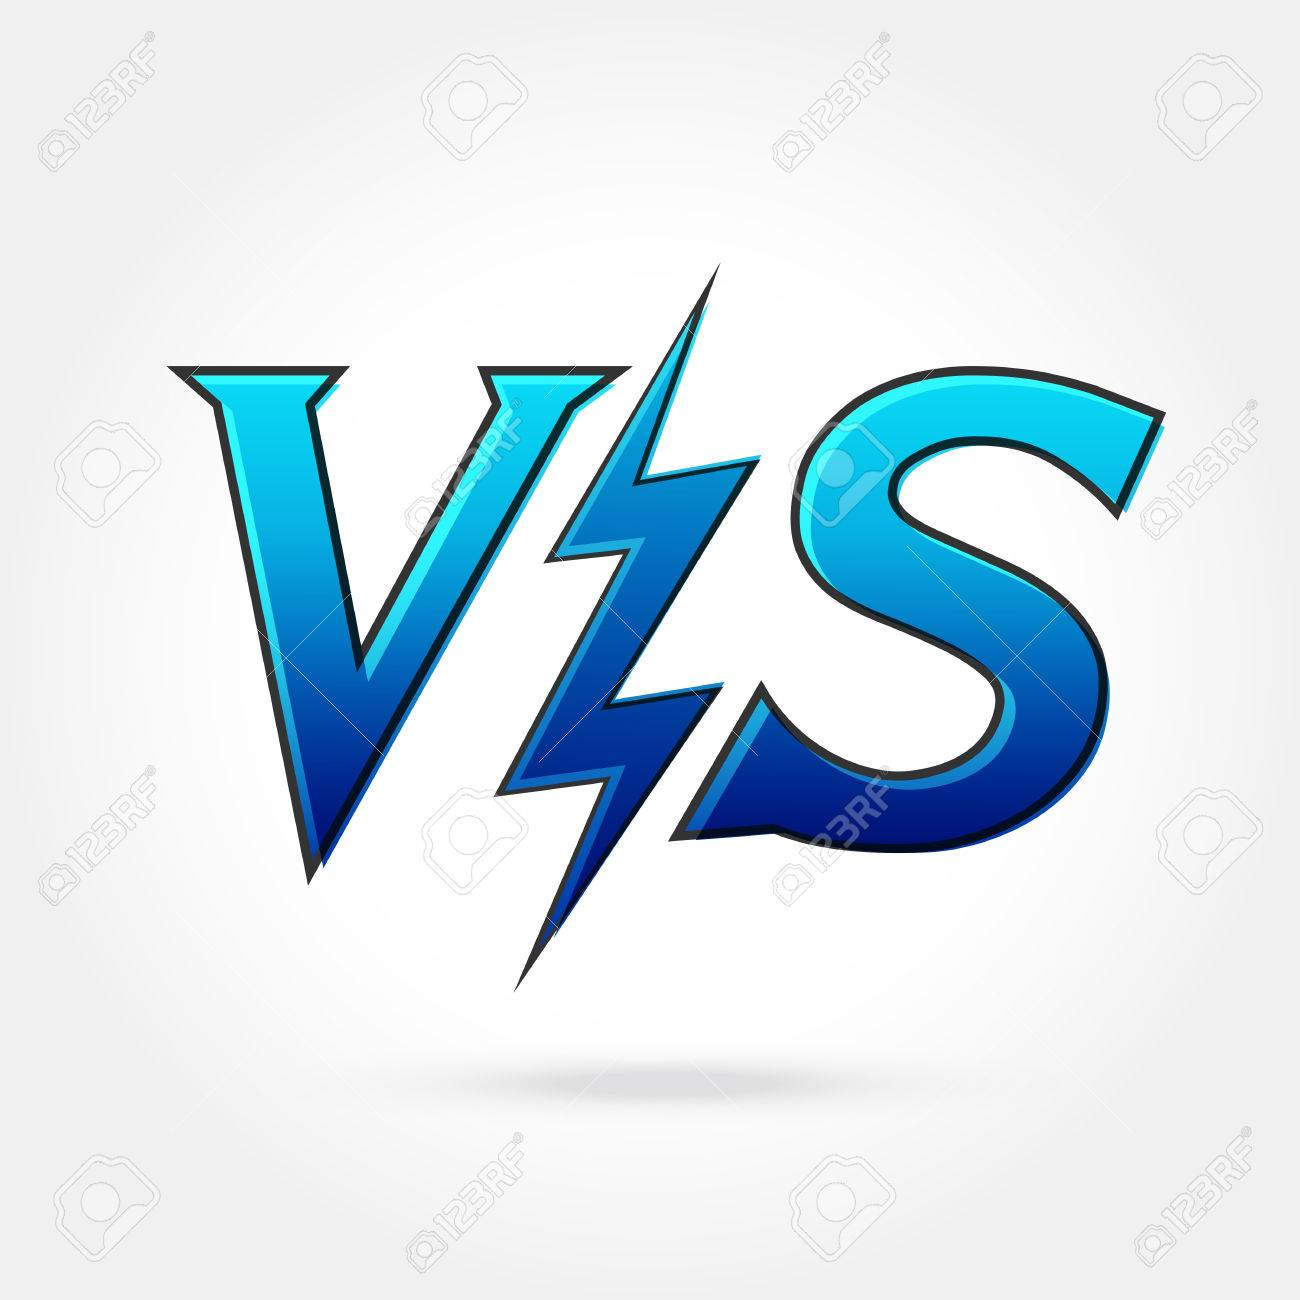 / Vs Versus Letters Or Vs Logo Isolated Flat Style Modern Logotype